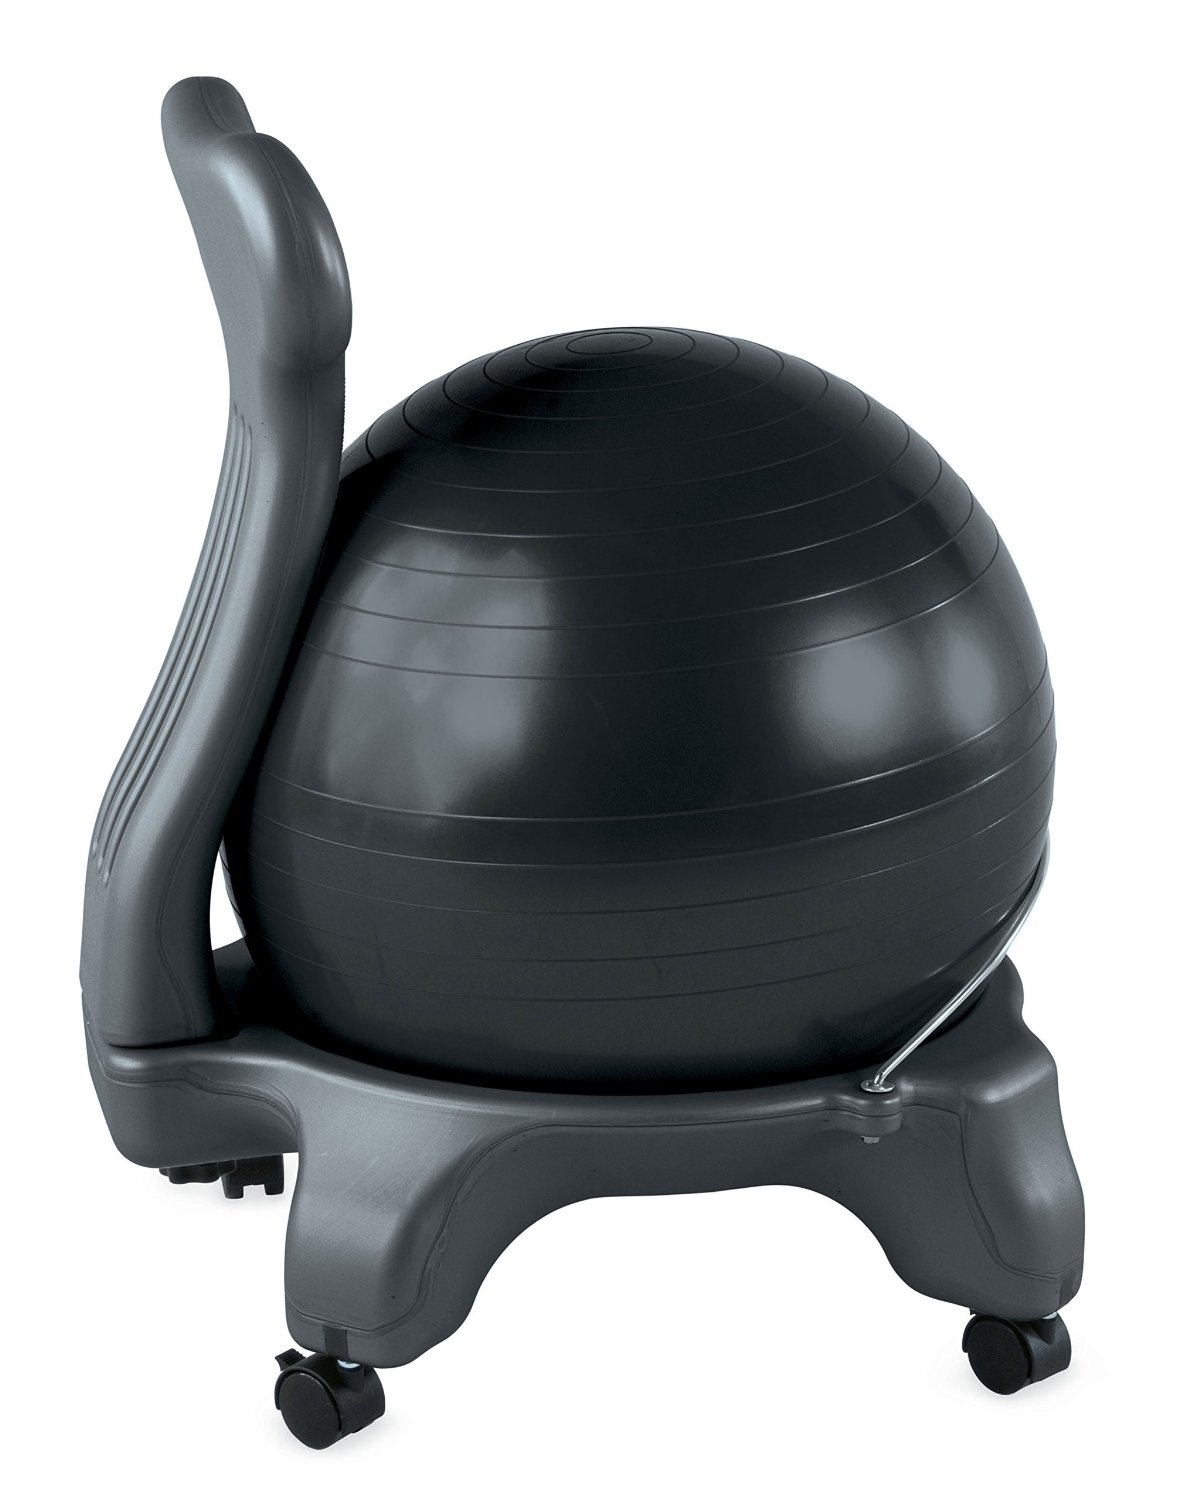 Yoga Ball Desk Chair 2014 Marfan Rd Gift And Resource Guide Musings Of A Marfan Mom